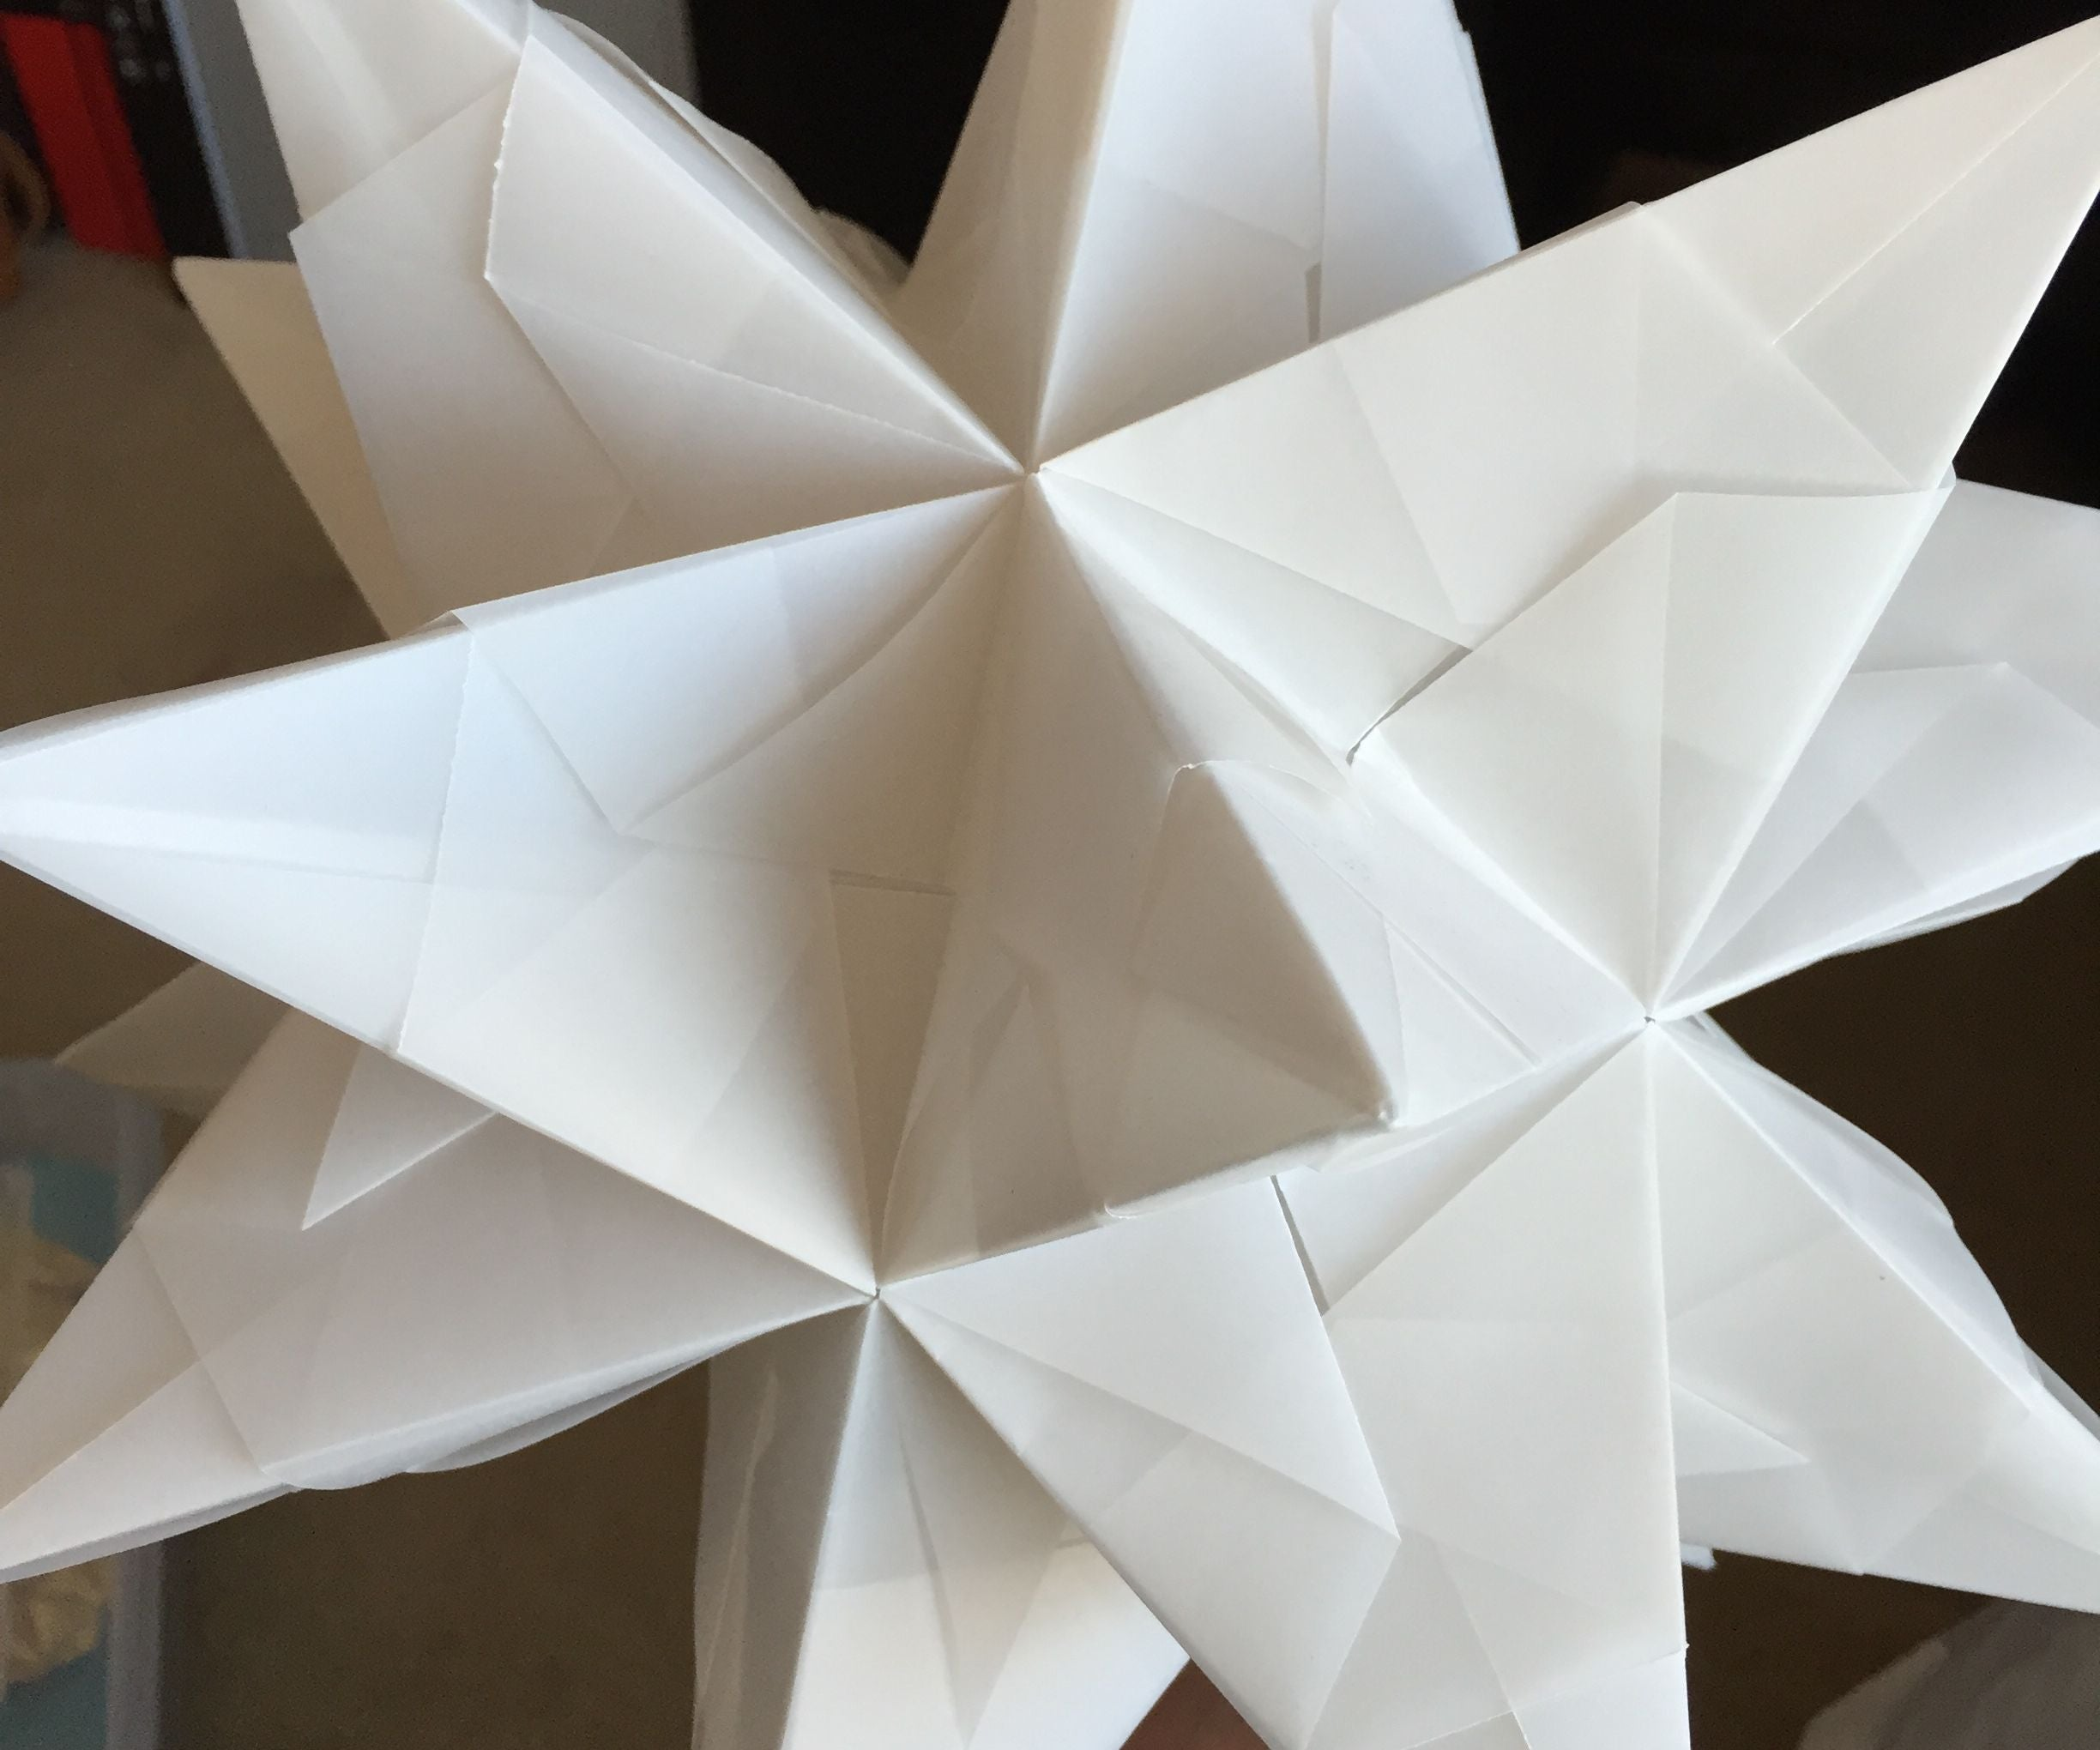 300 Index Cards: Origami With Index Cards | 2040x2448